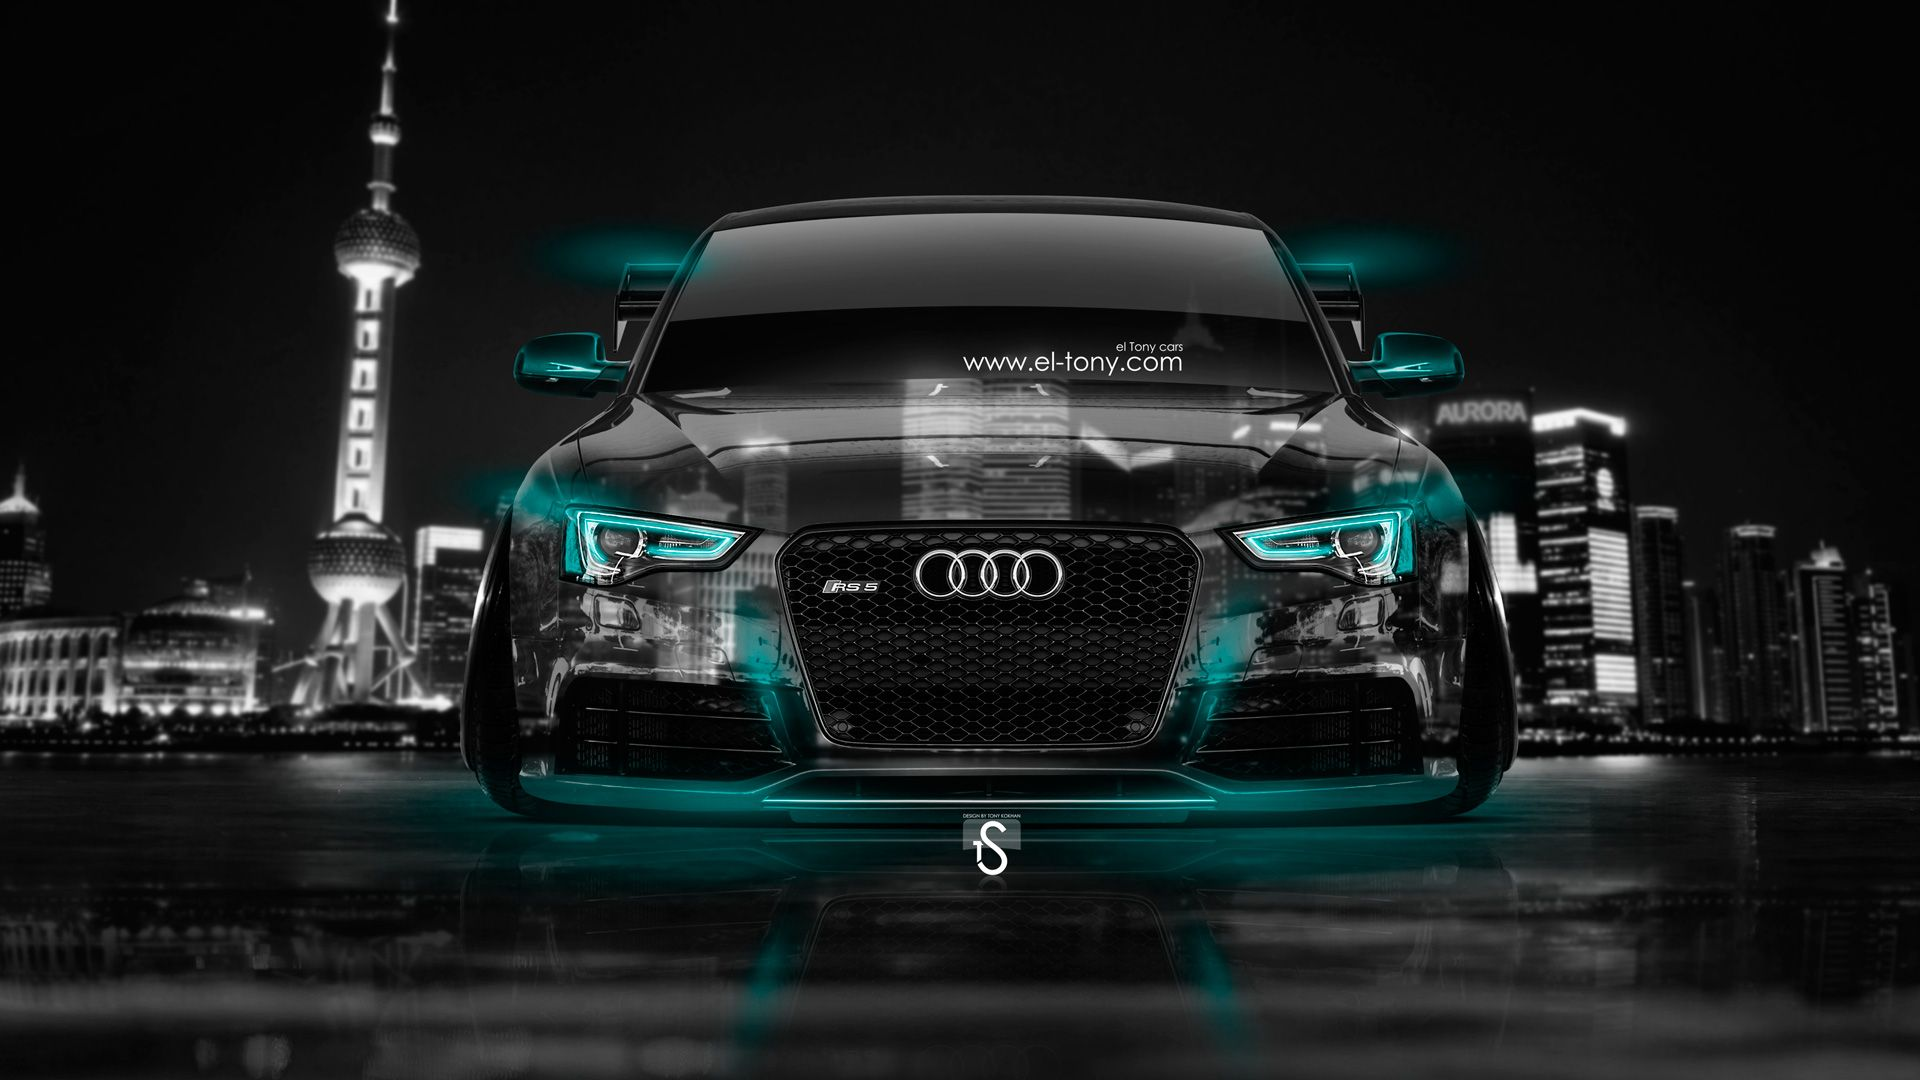 Audi Rs5 2014 | Audi RS5 Tuning Front Crystal City Car 2014 Azure Neon HD Wallpapers  .